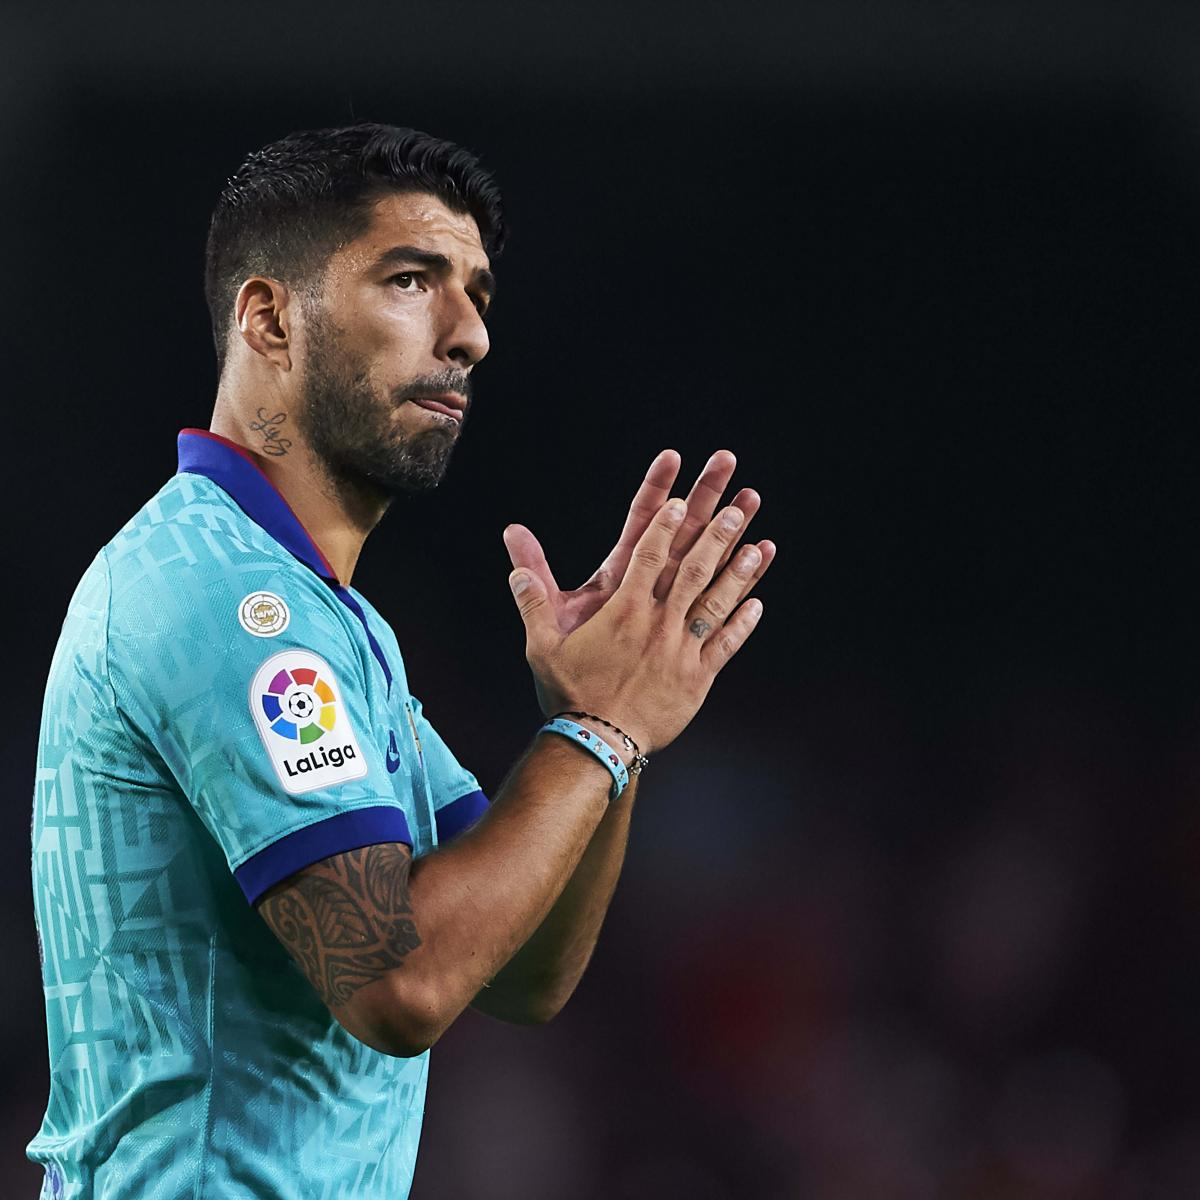 Luis Suarez Says Barcelona Form Is 'Worrying' After Shock Granada Loss